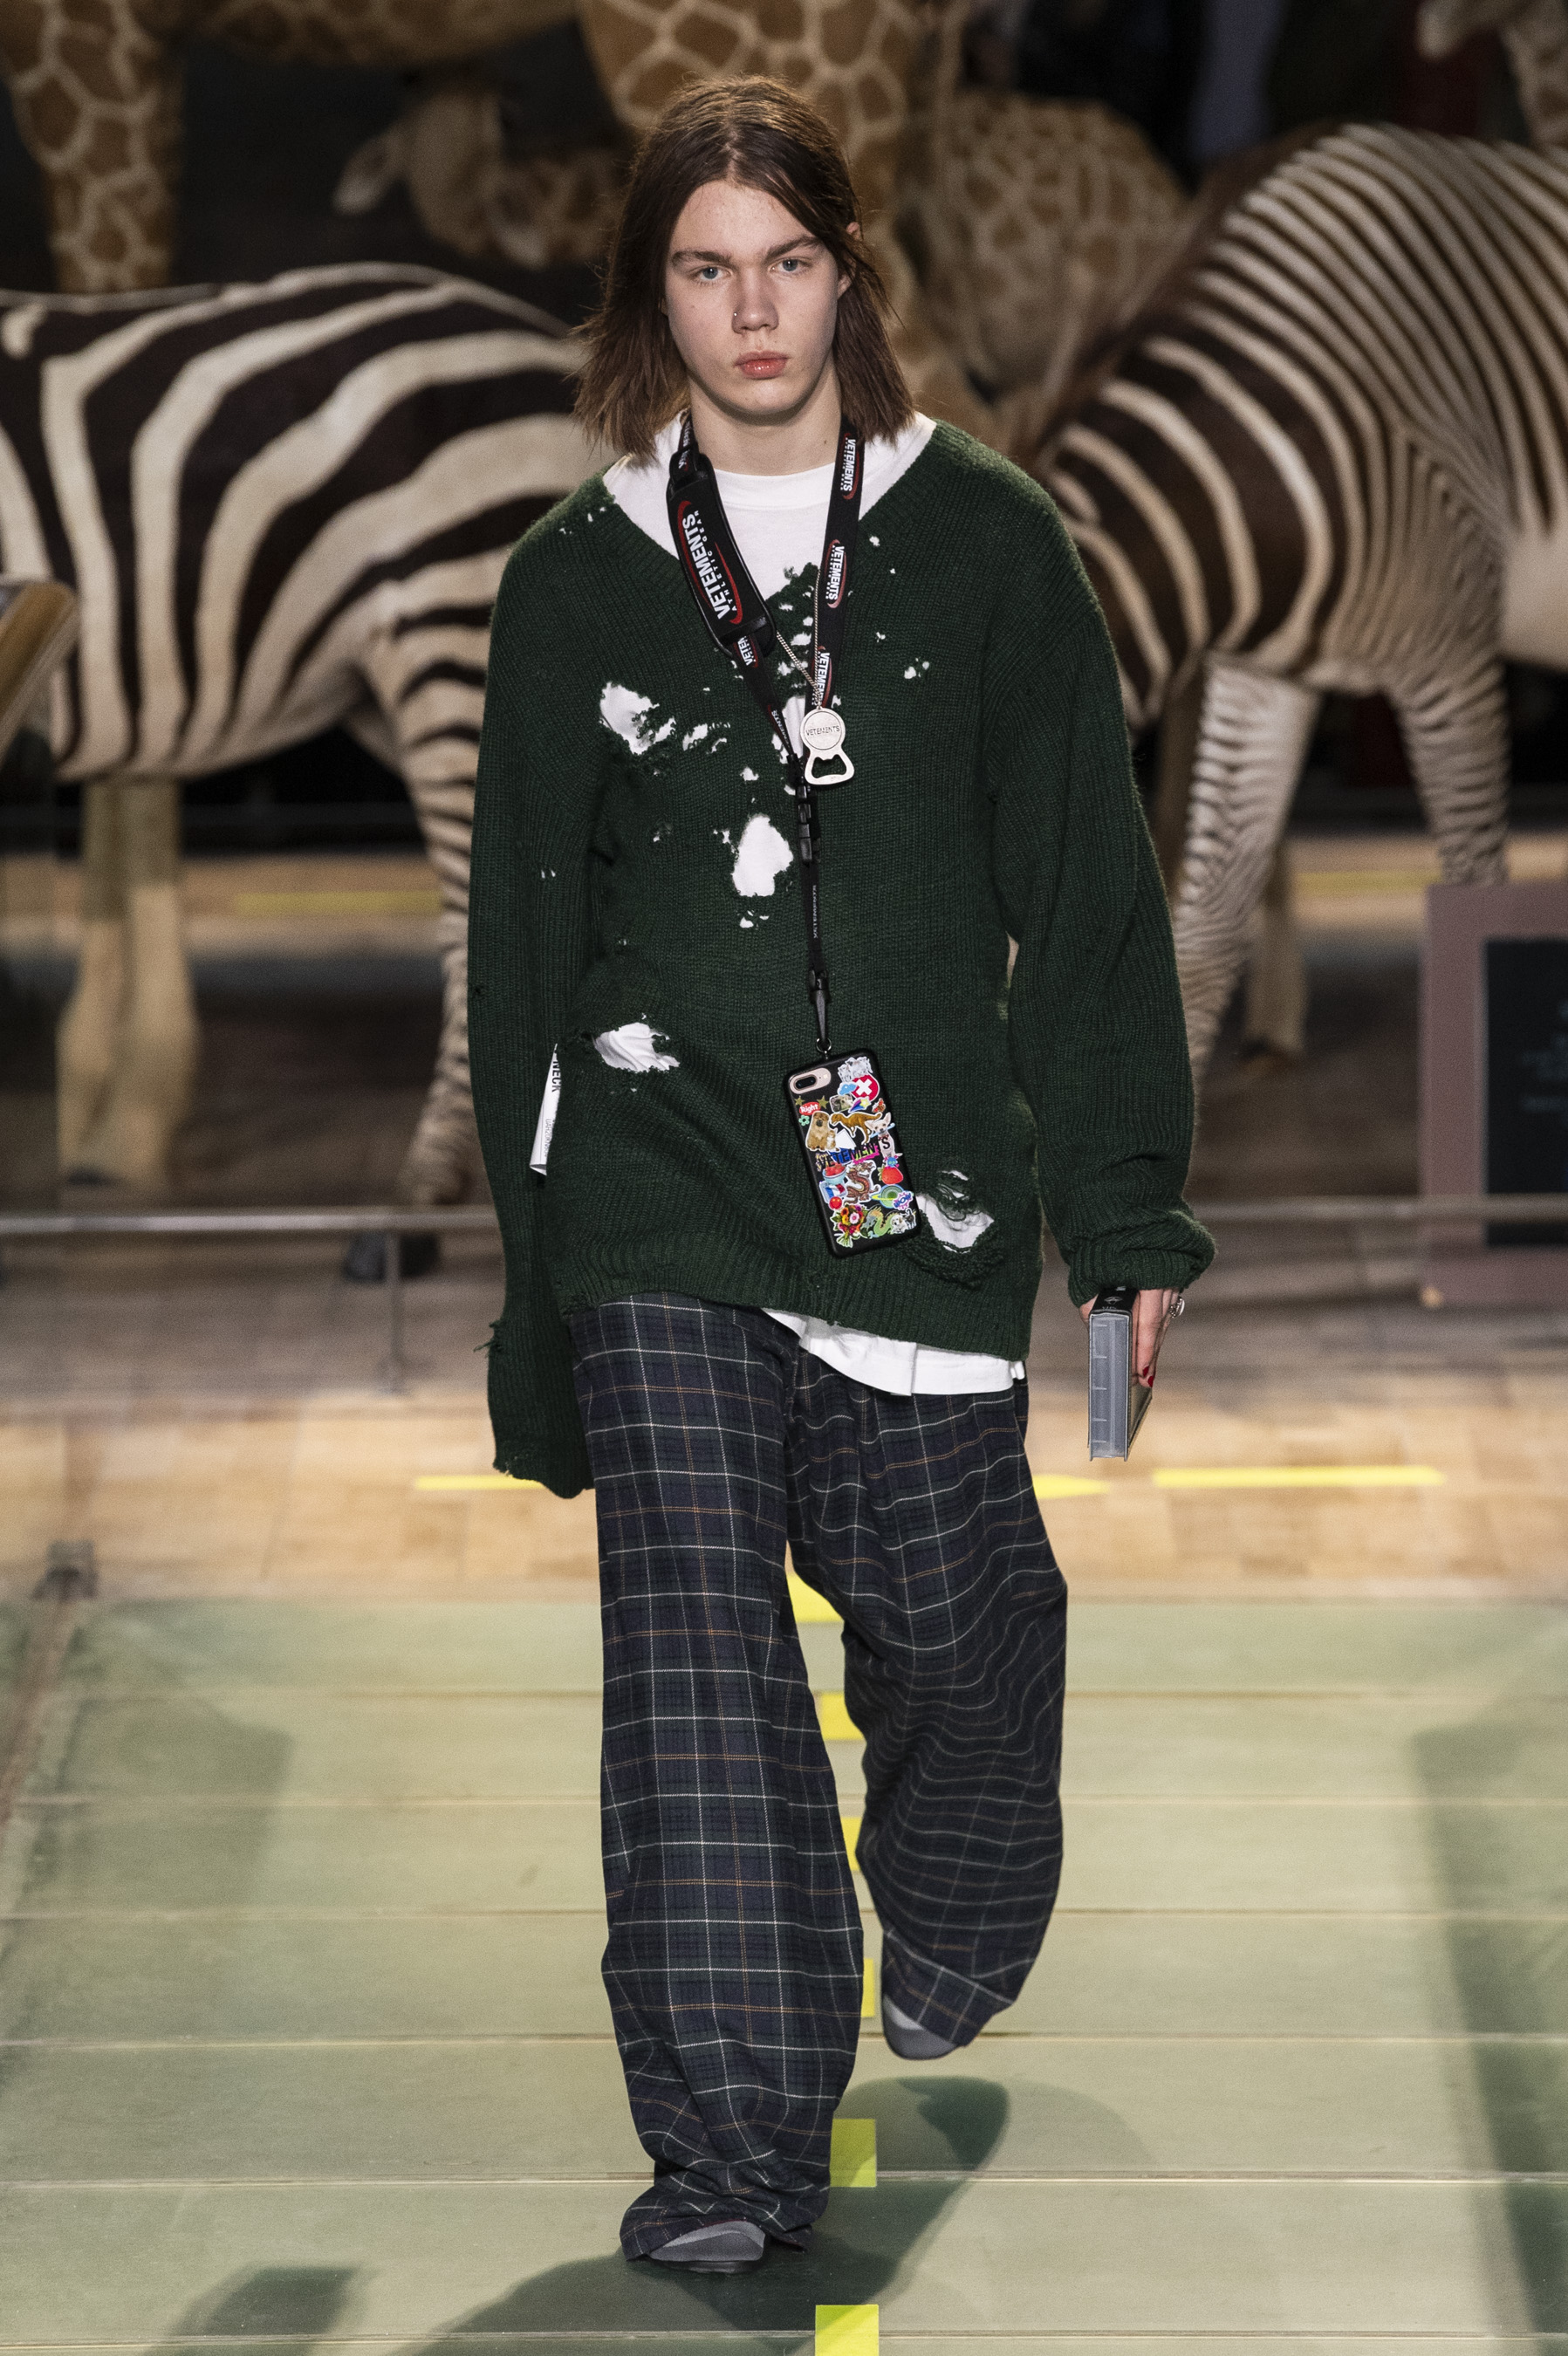 Grunge Fall 2019 Menswear Fashion Trend